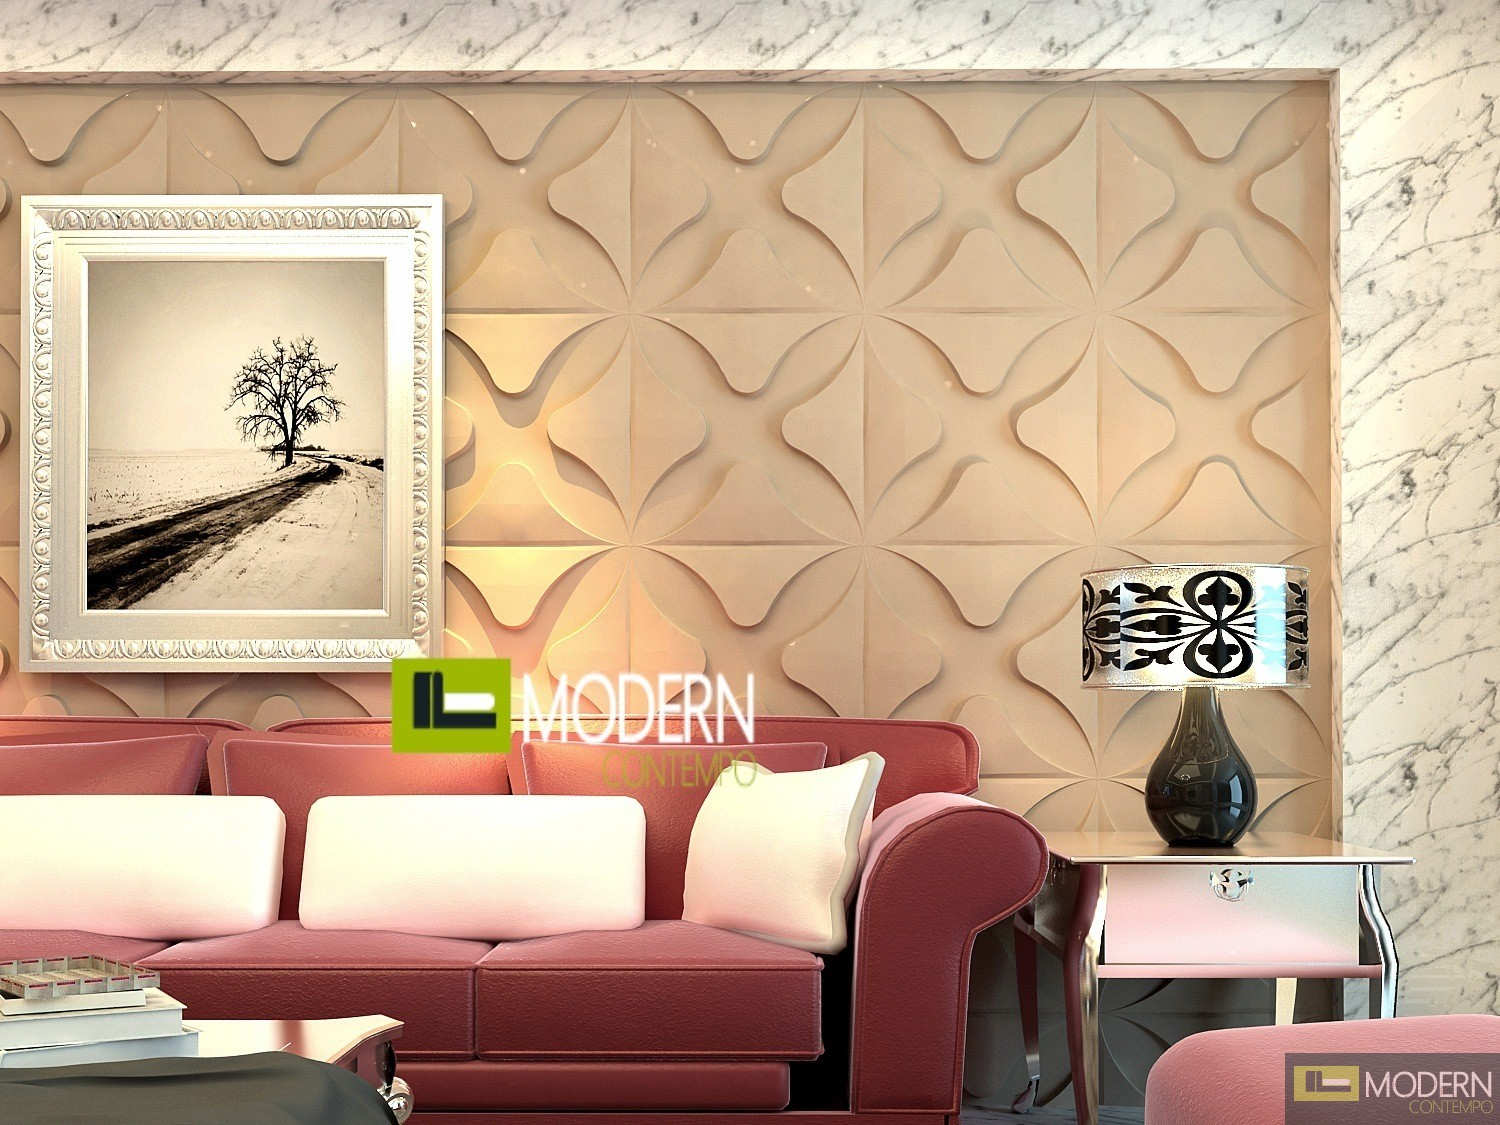 Club Exterior And Interior Glue On Wall 3d Surface Panel